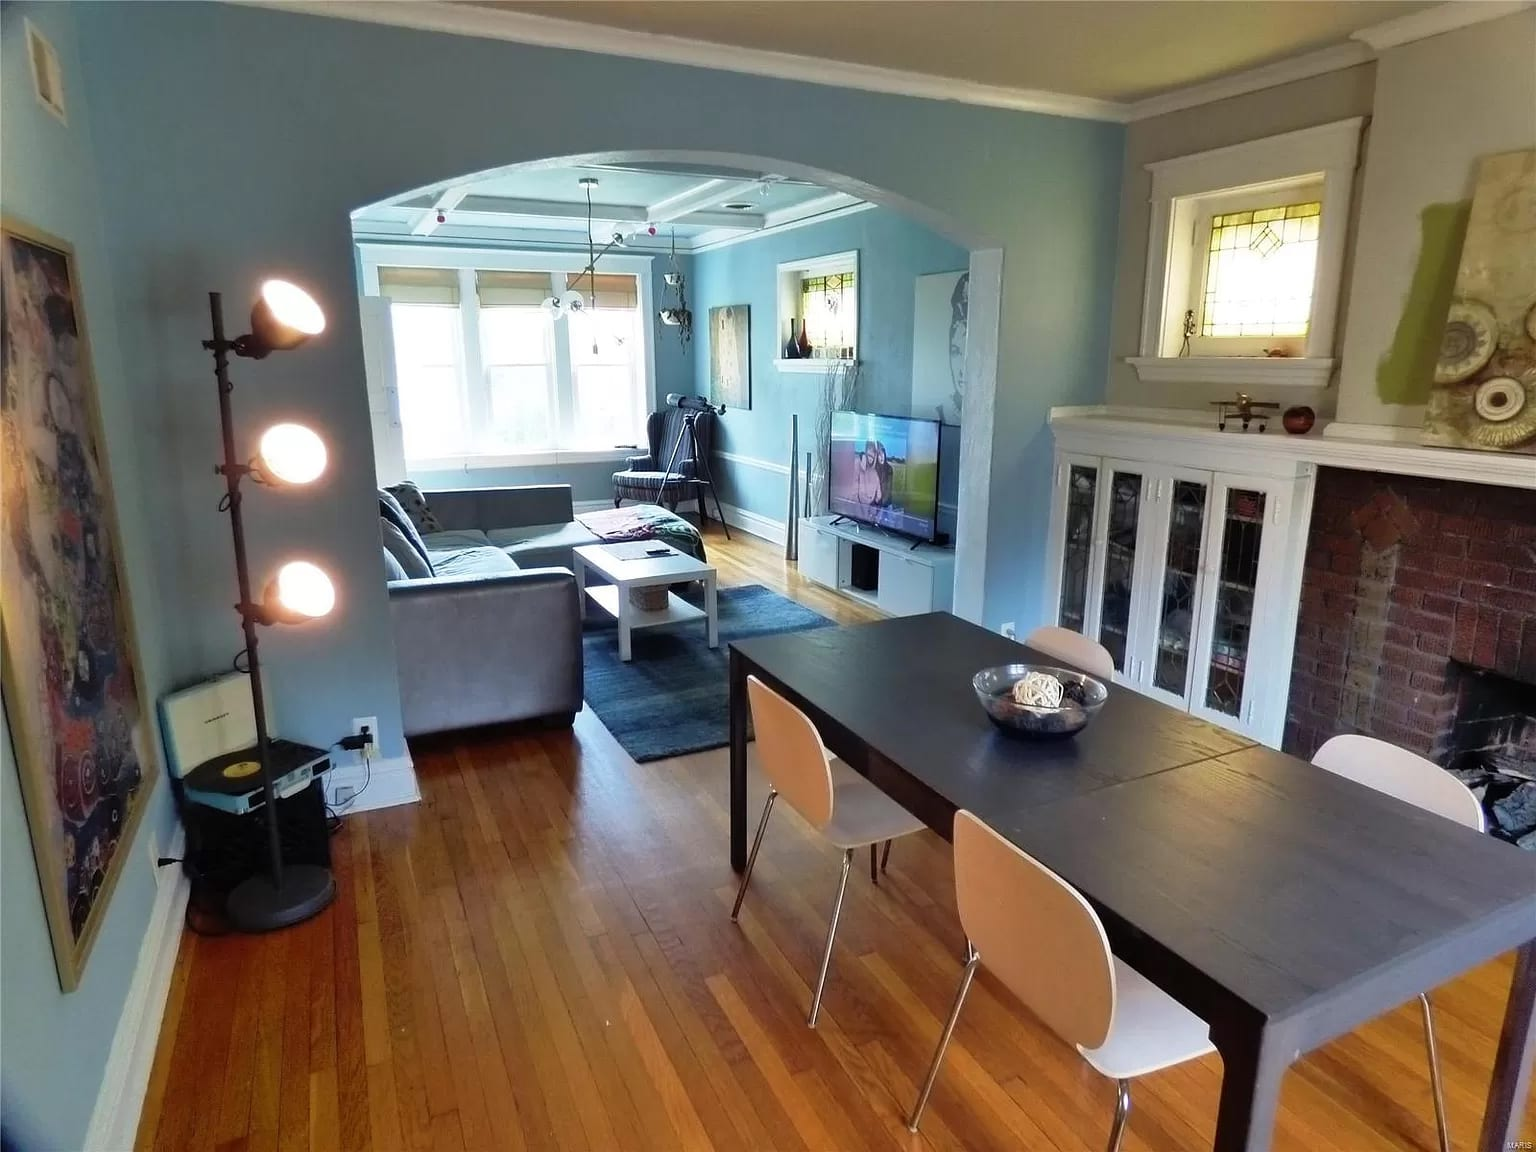 Real estate listing photos of 4616 South Grand.